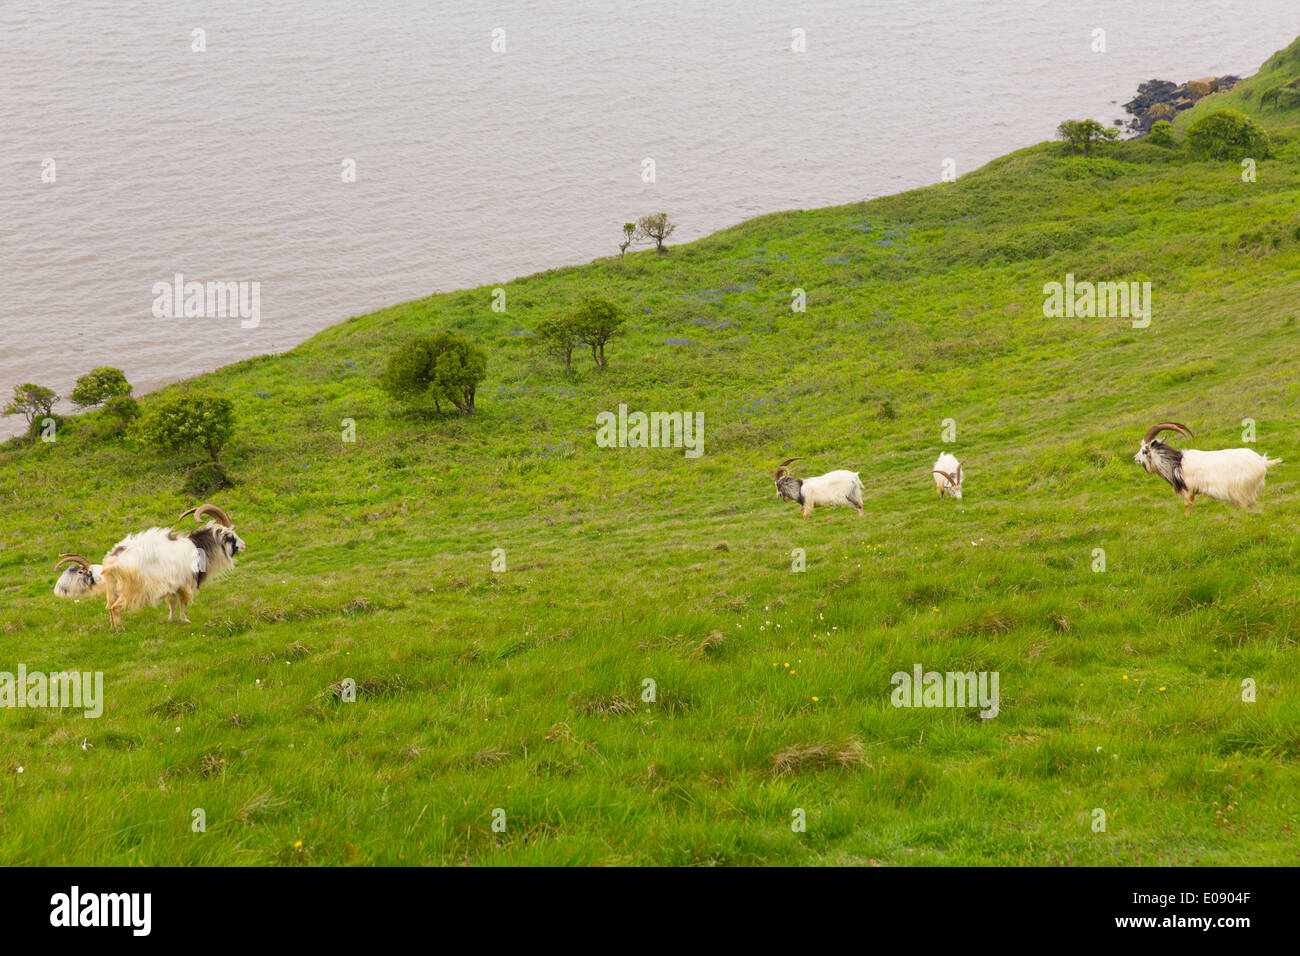 British Primitive goat breed large horns and beard white grey and black Brean Down Somerset England - Stock Image